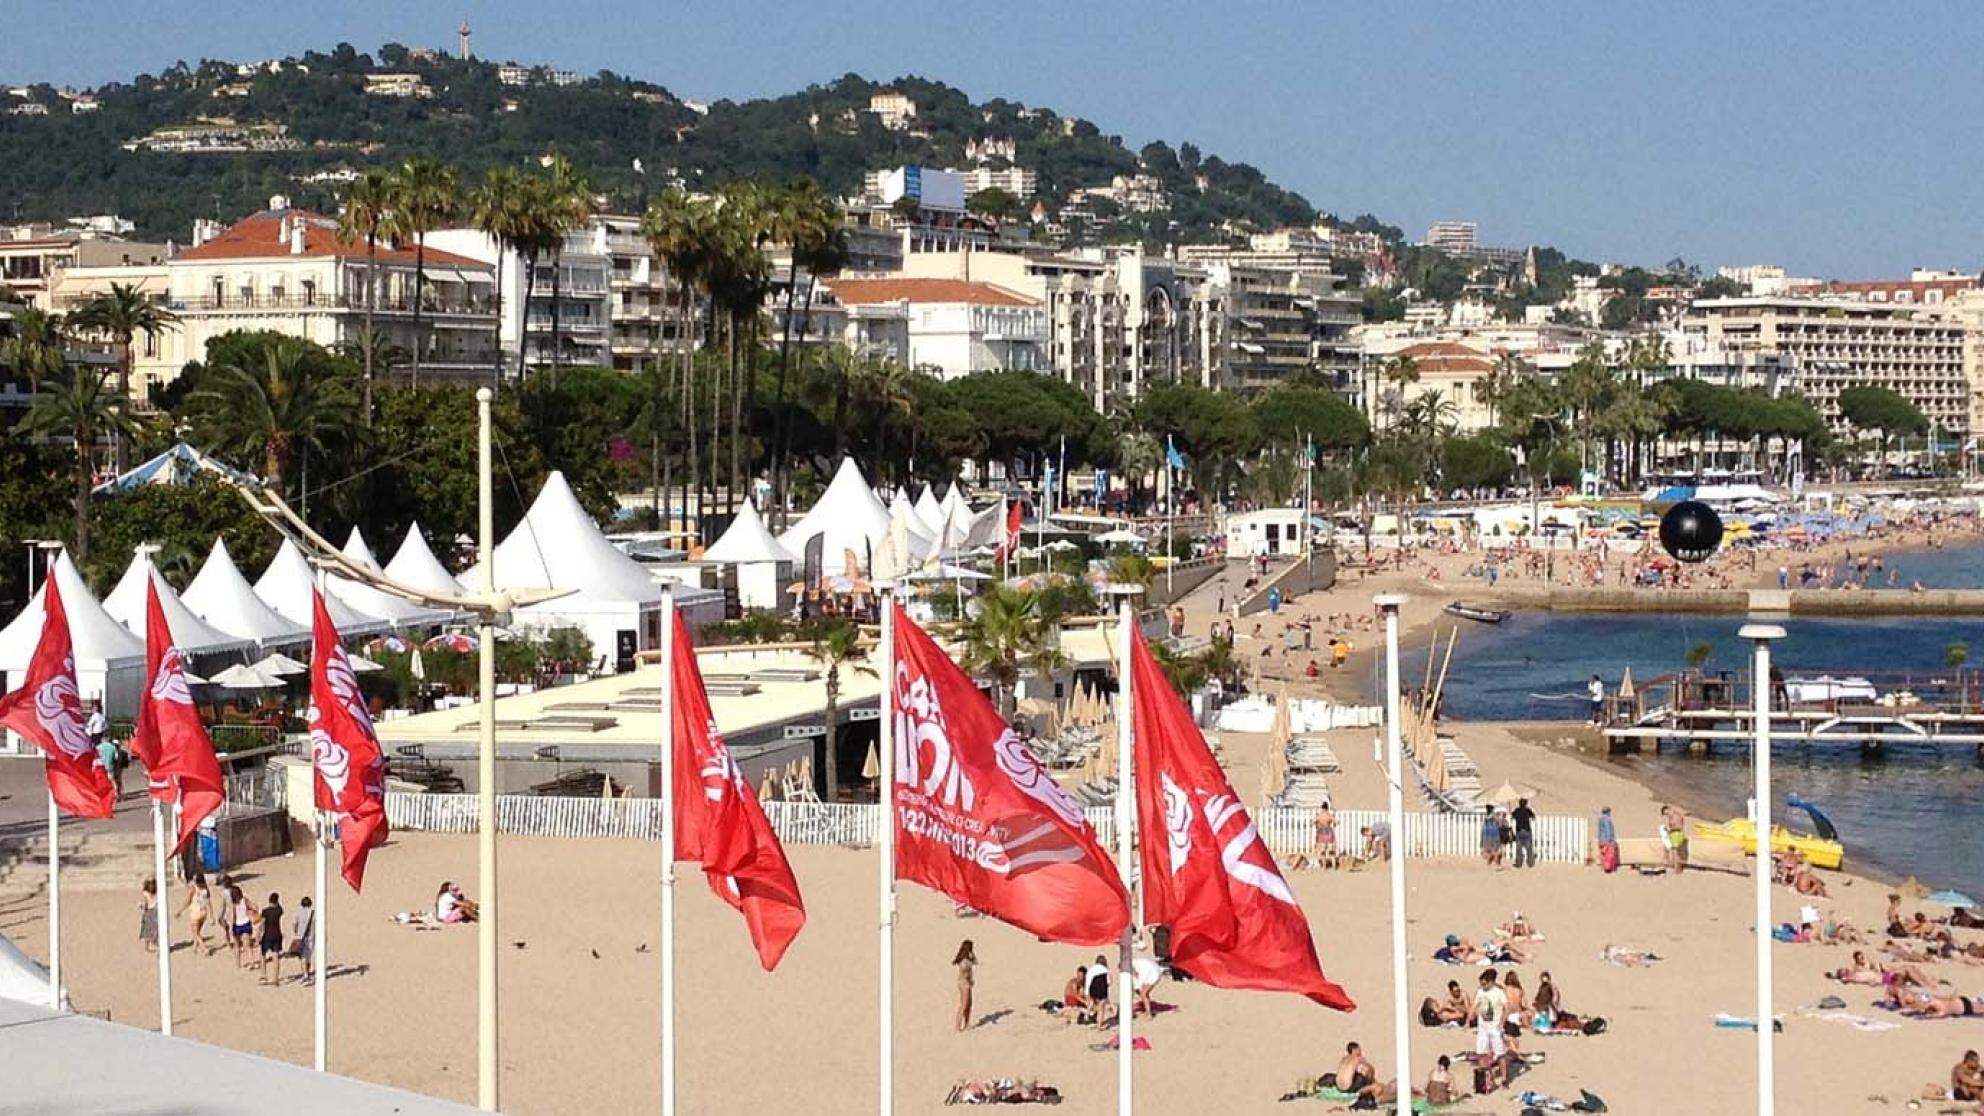 The beach front at Cannes with red flags in the foreground